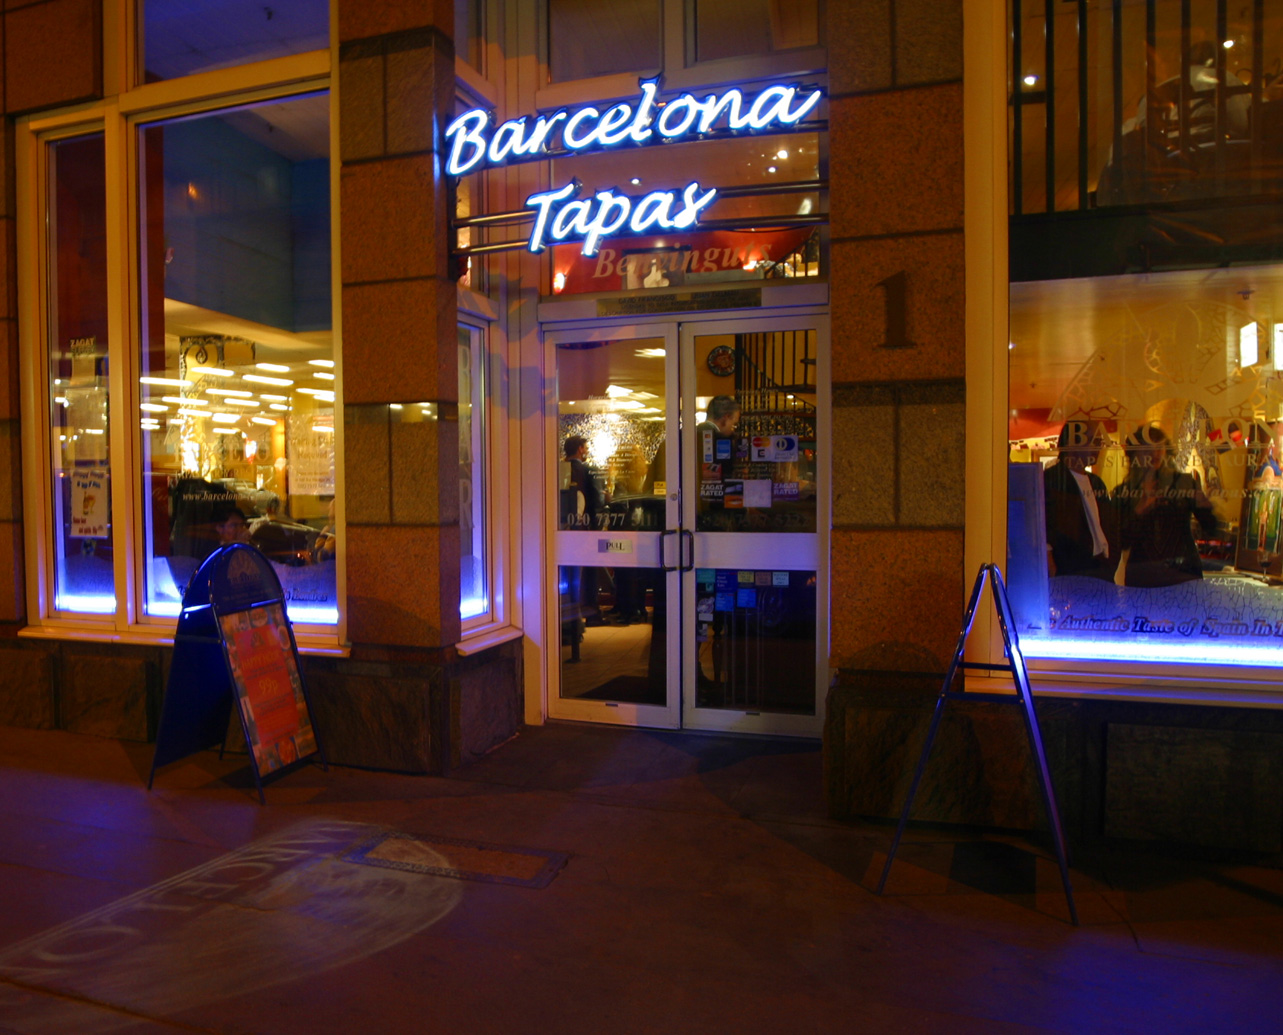 Hire barcelona tapas bars restaurants middlesex street e1 hire barcelona tapas bars restaurants middlesex street e1 venuescanner malvernweather Gallery